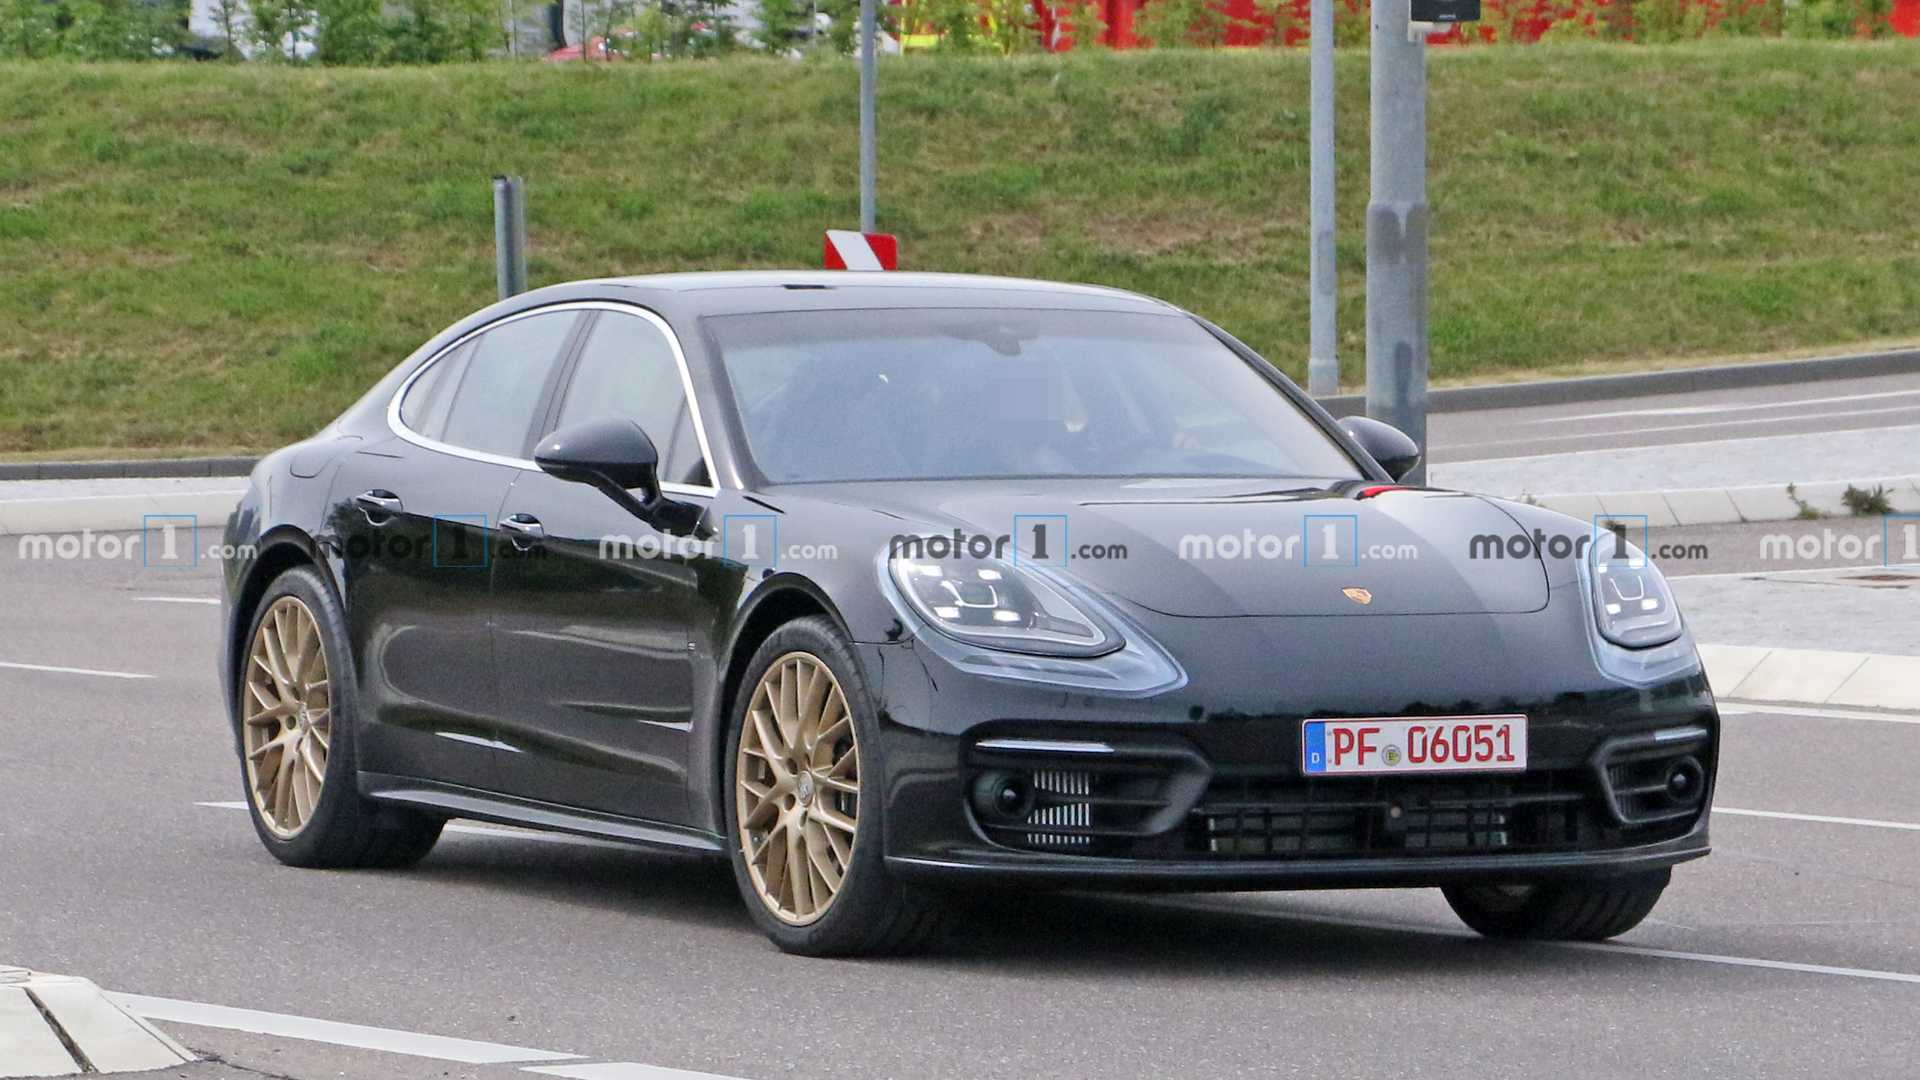 The second generation of the Porsche Panamera debuted nearly four years ago and is ripe for a facelift – which it will receive soon, judging by these spy shots.